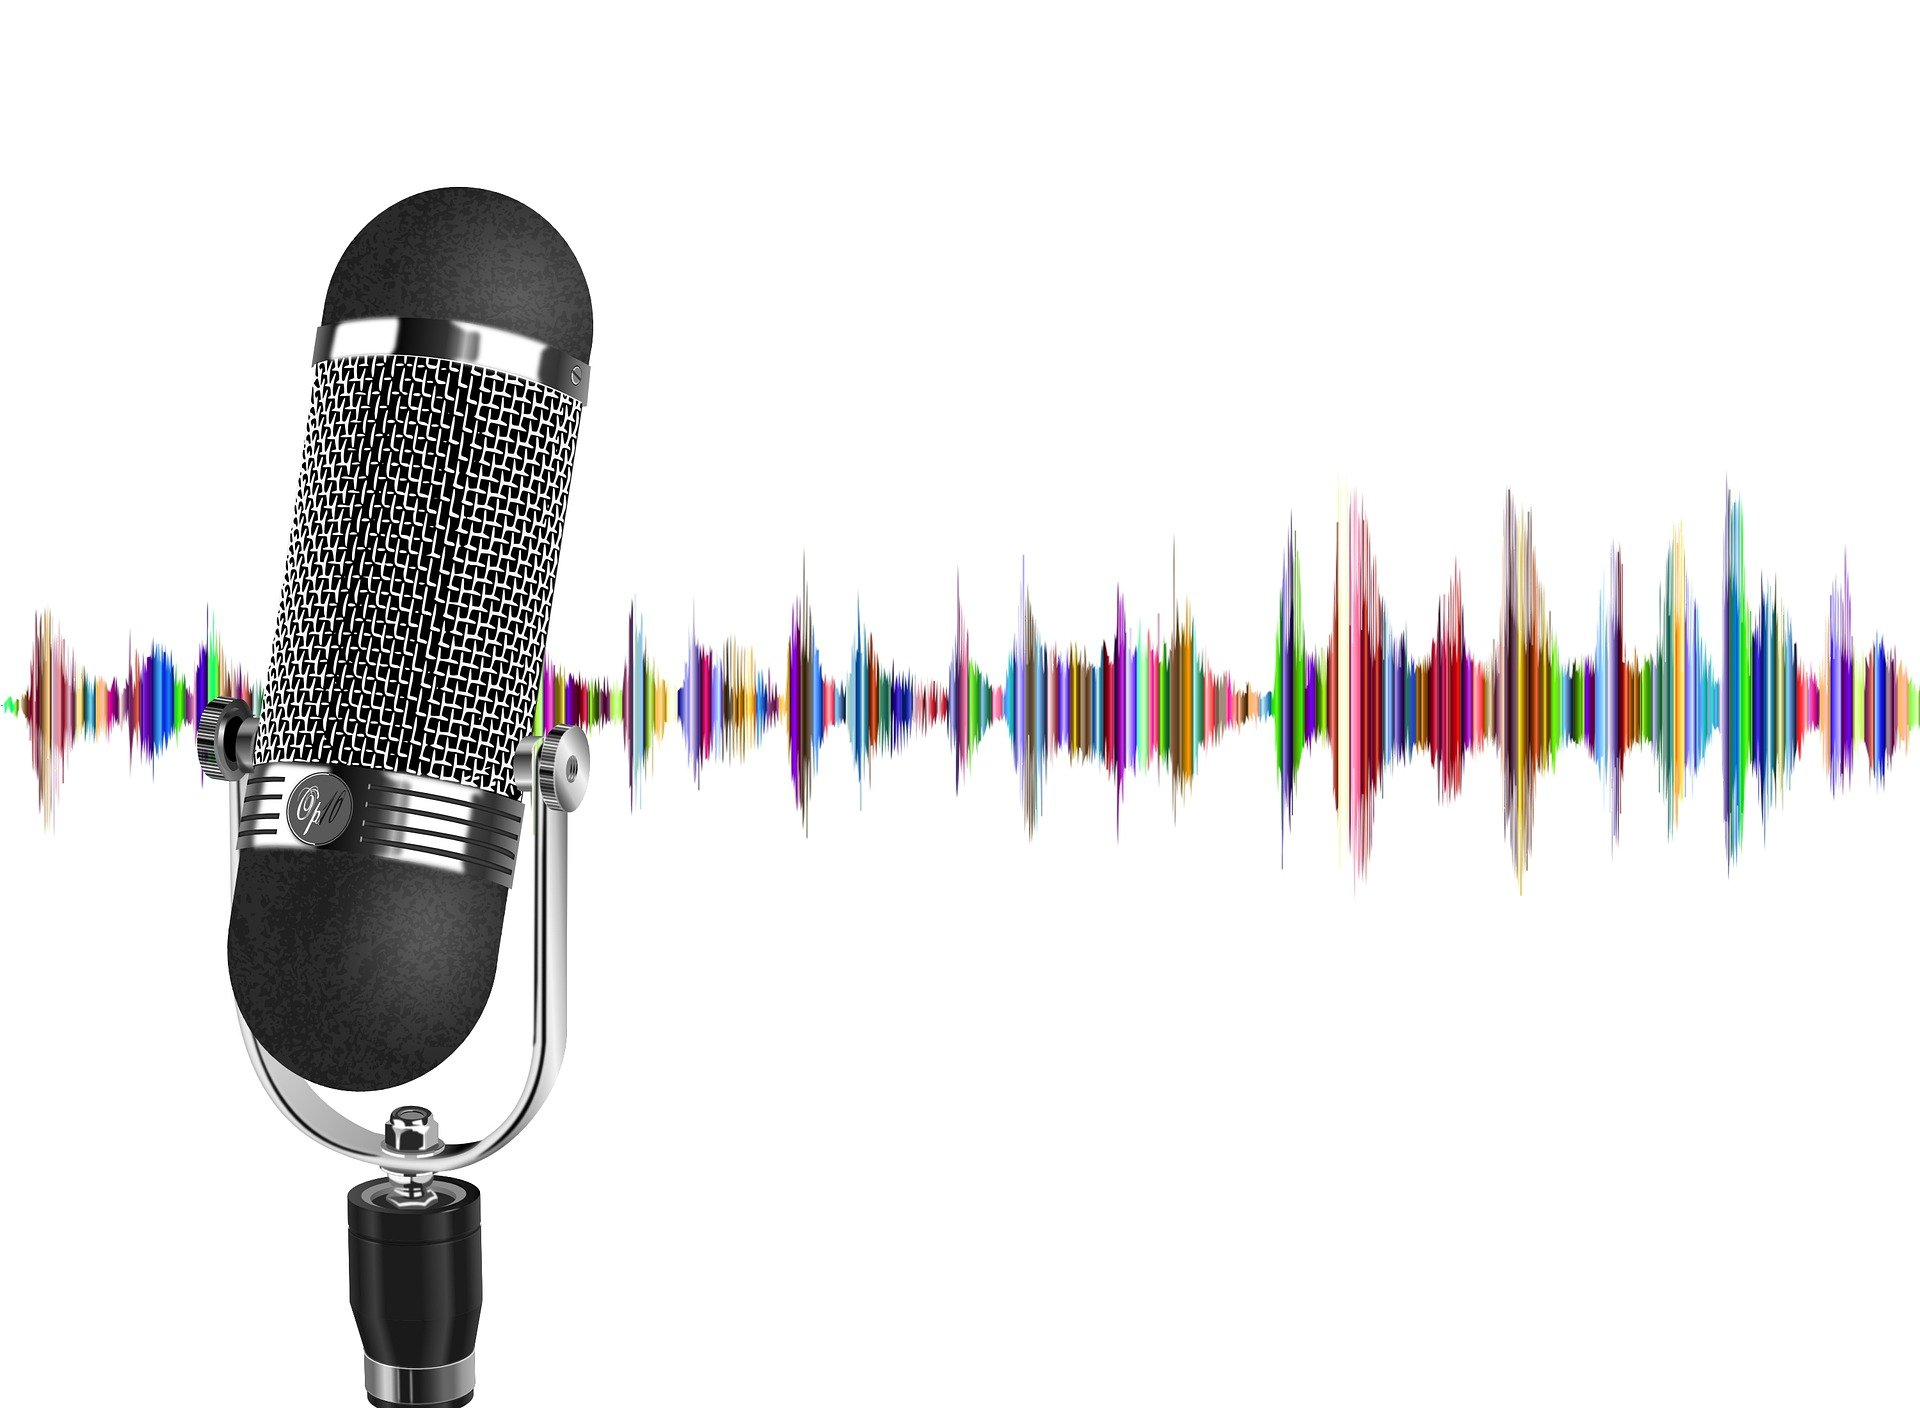 Podcasts are another means of entertaining yourself indoors #podcast #indoorentertainment